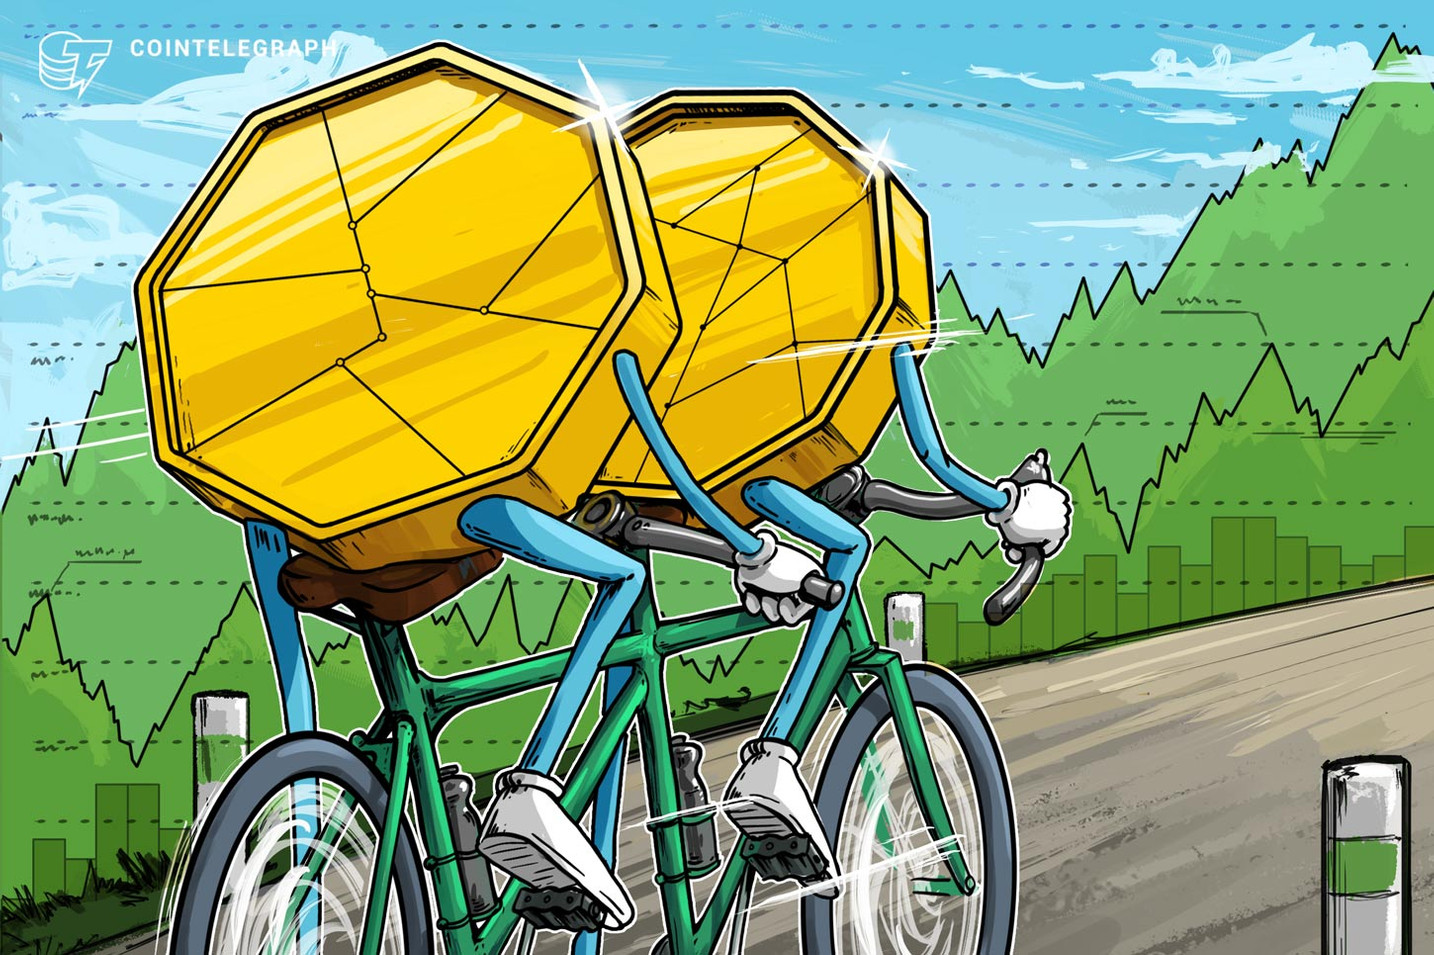 After a Catastrophic Week, Crypto Markets Rally Forth Into the Green